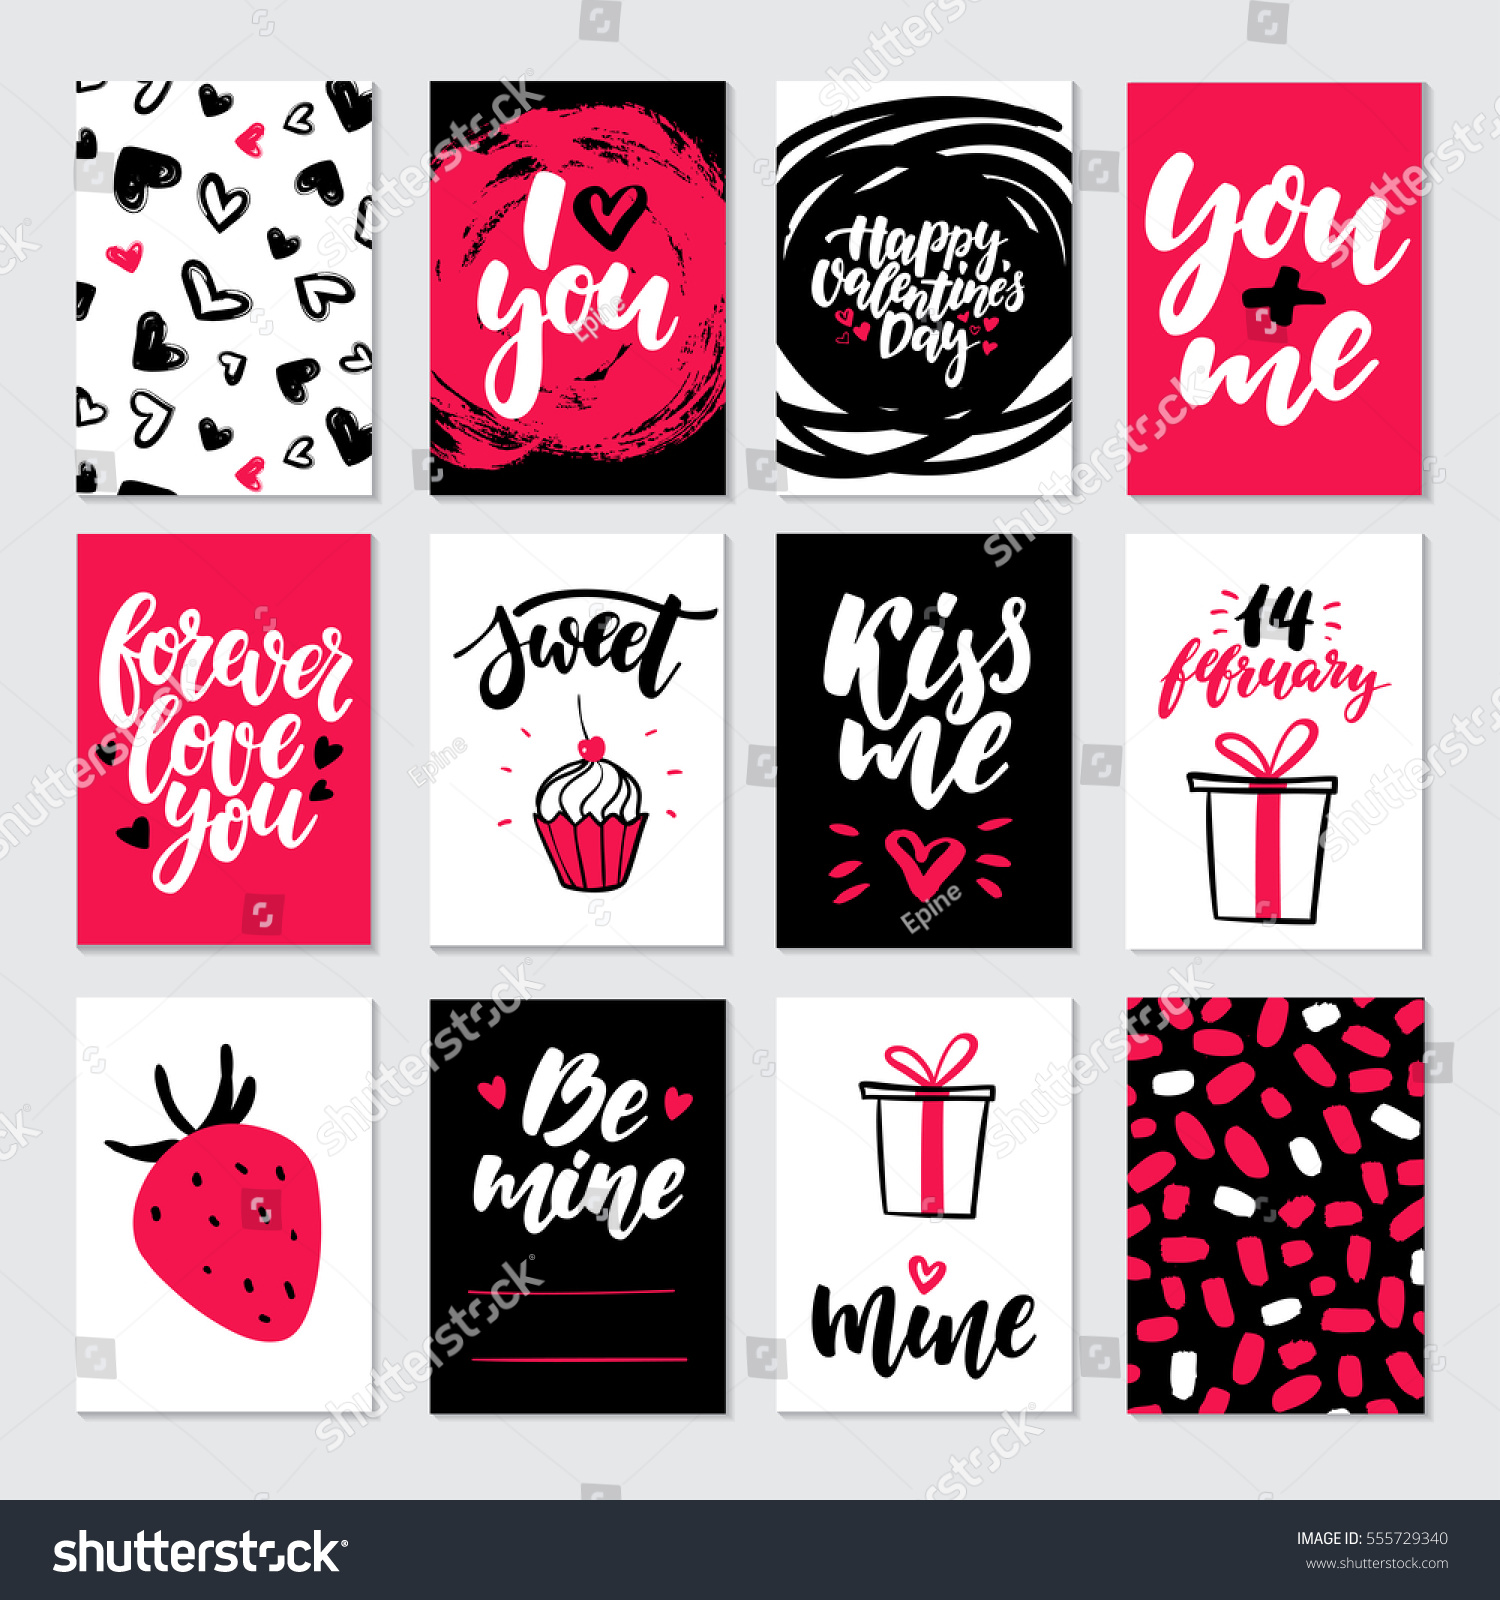 Love Quotes For Valentines Day Cards Valentines Day Gift Card Vector Set Stock Vector 555729340